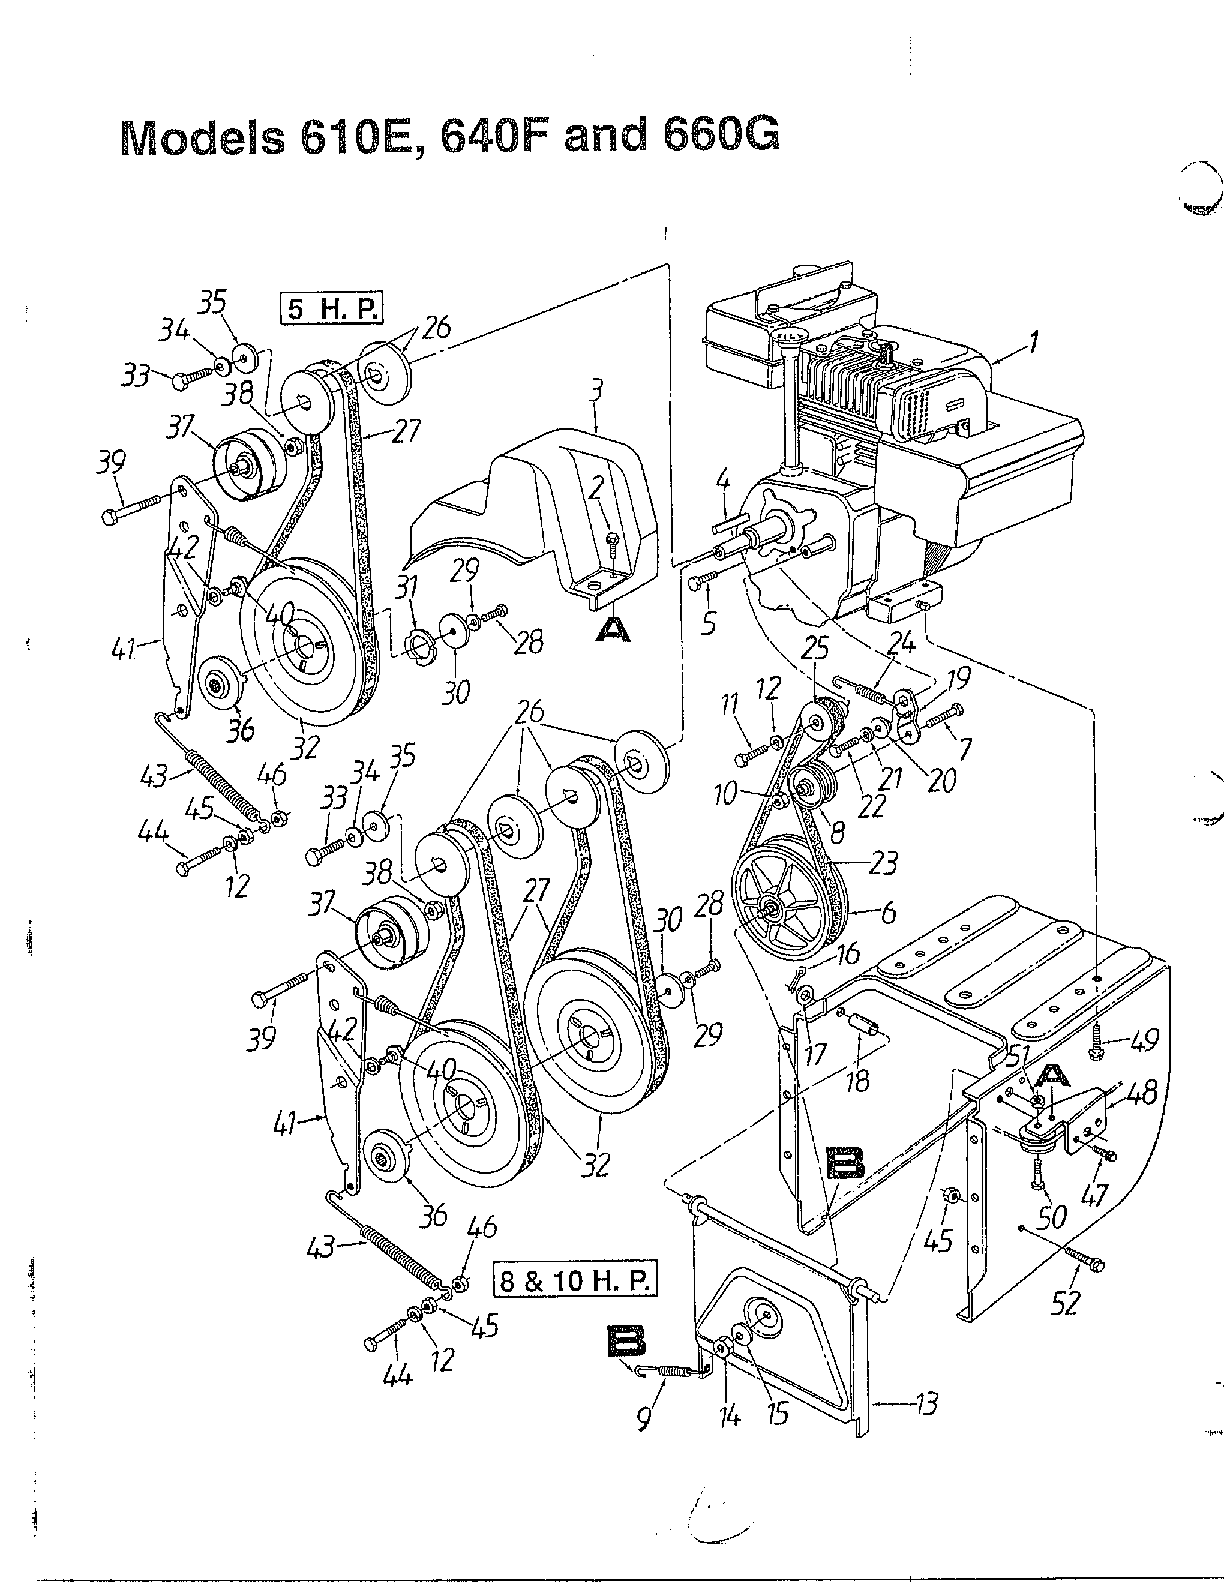 Snow Thrower Parts : Old mtd snowblower parts